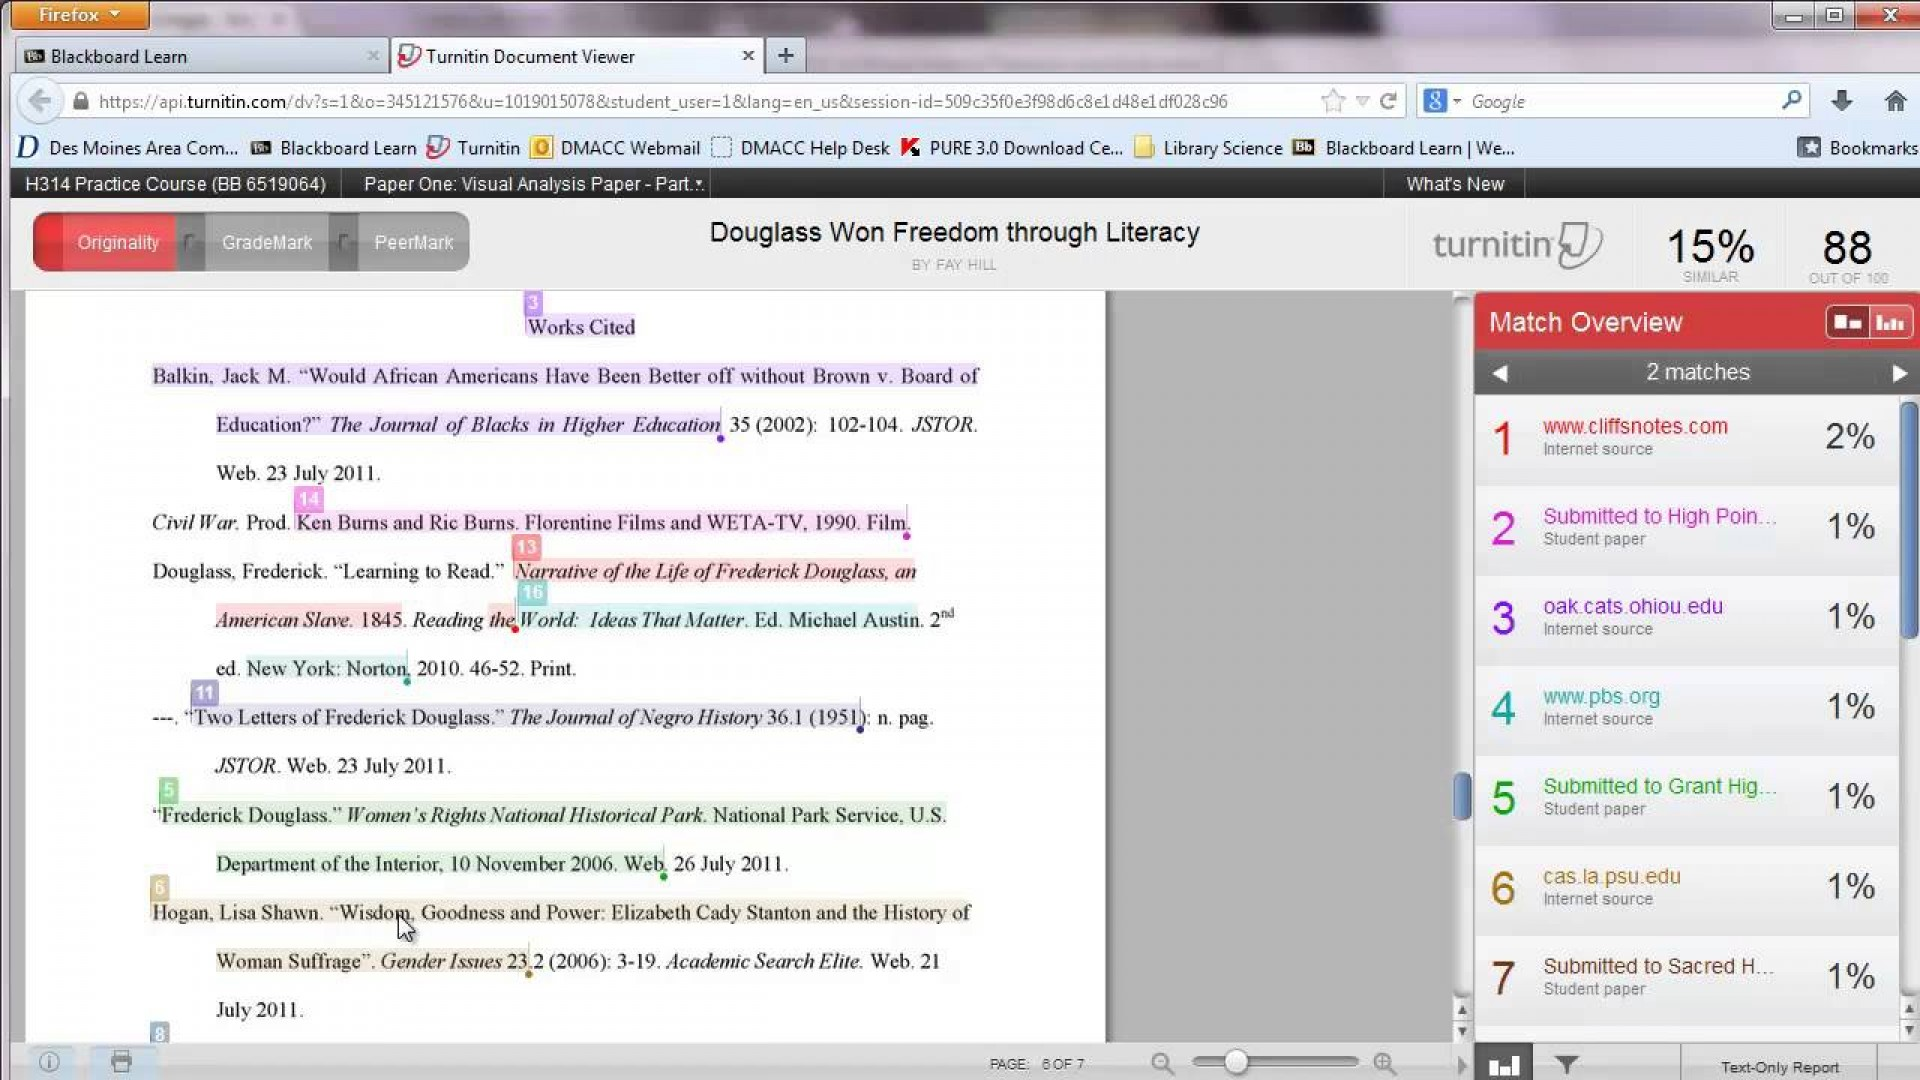 018 Free Online Plagiarism Checker Researchs Maxresdefault Rare Research Papers Best For 1920